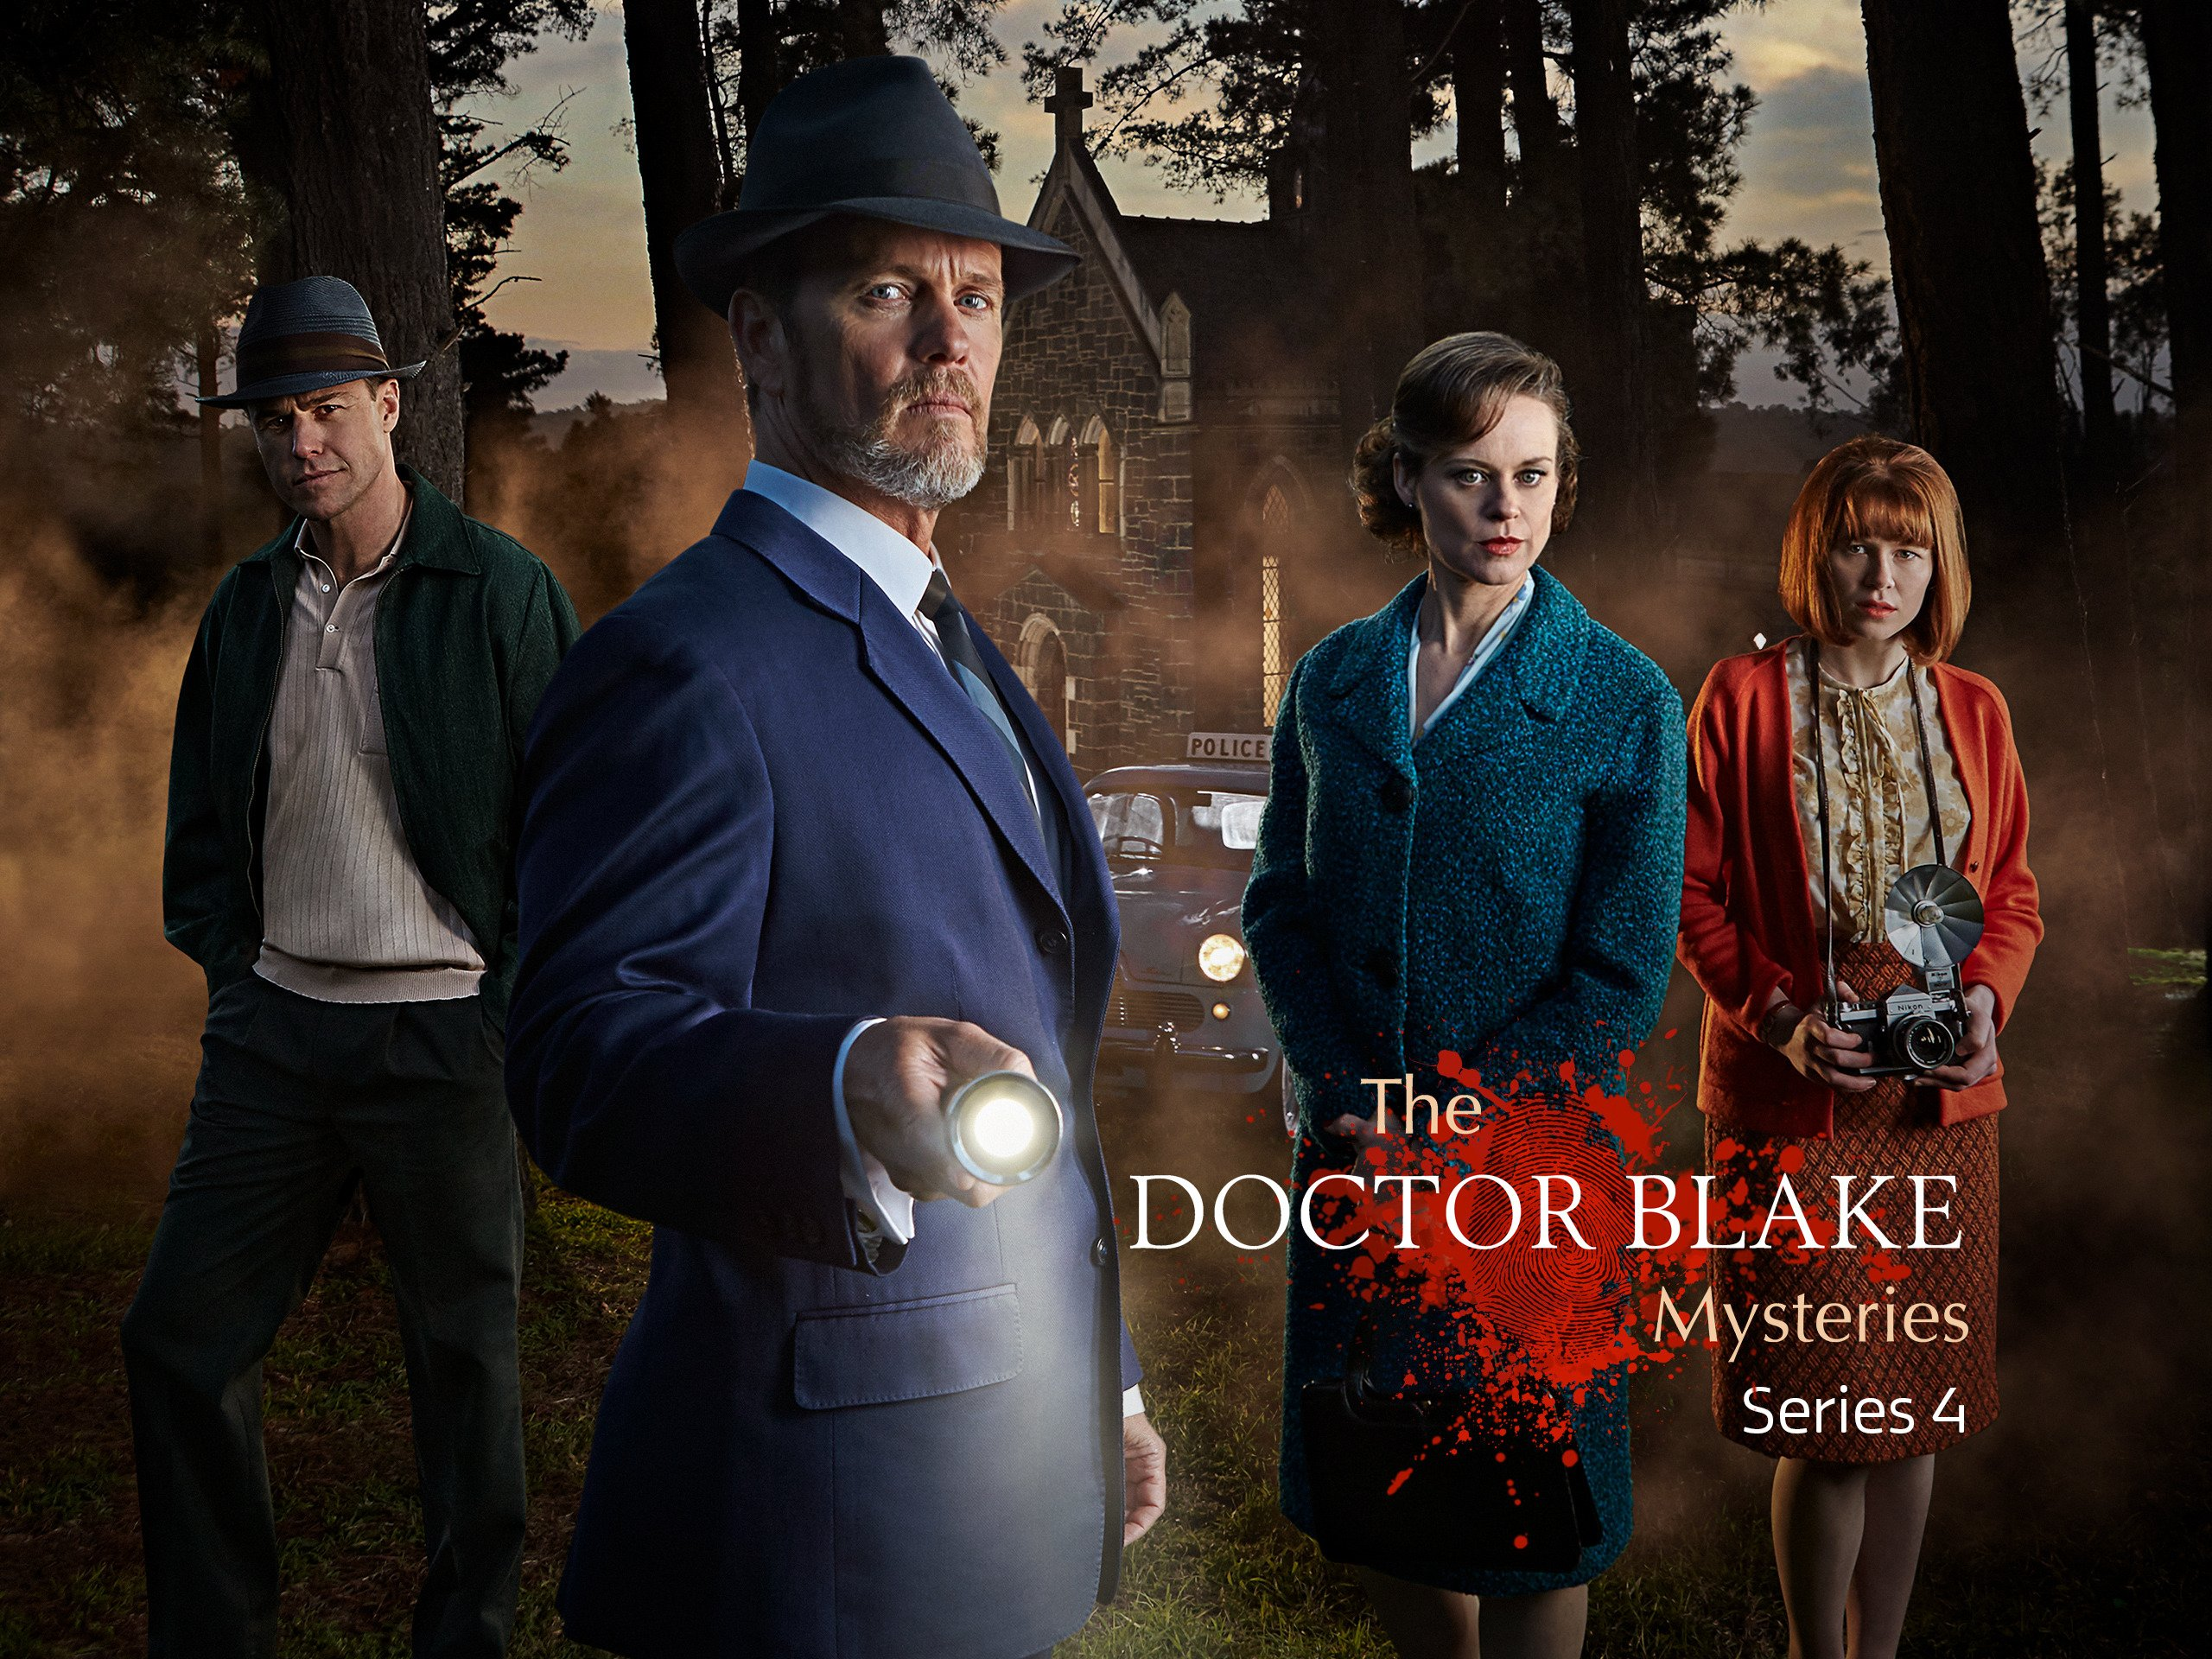 Watch The Dr Blake Mysteries Series 4 Prime Video